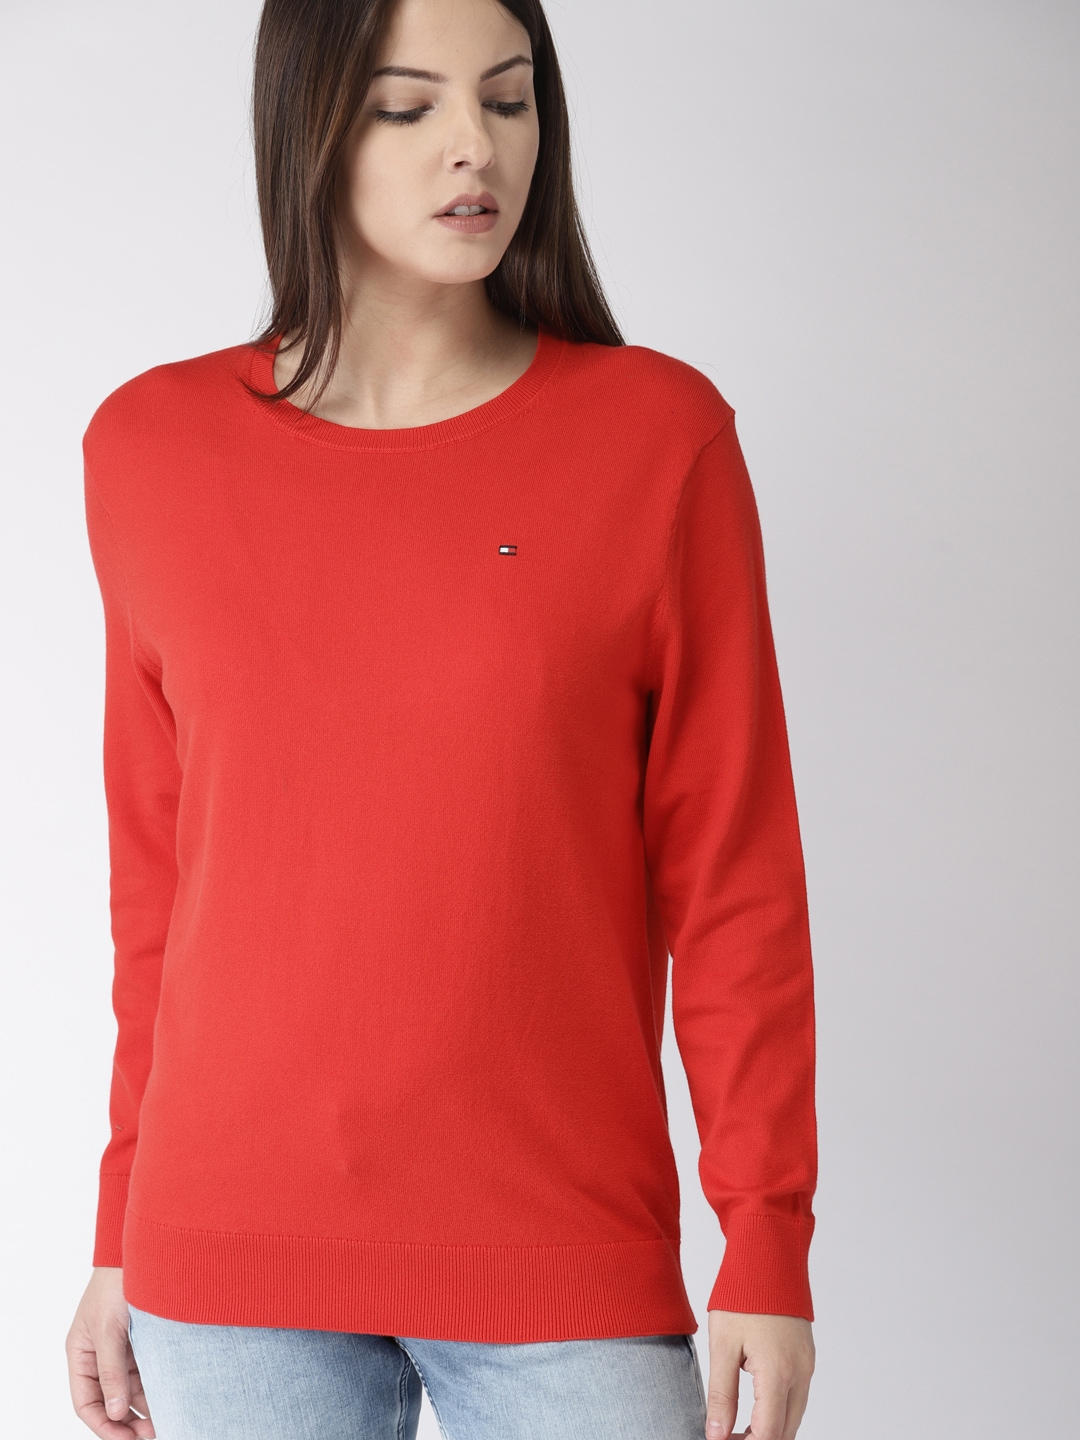 02d29153 Women Tommy Hilfiger Topwear - Buy Women Tommy Hilfiger Topwear online in  India